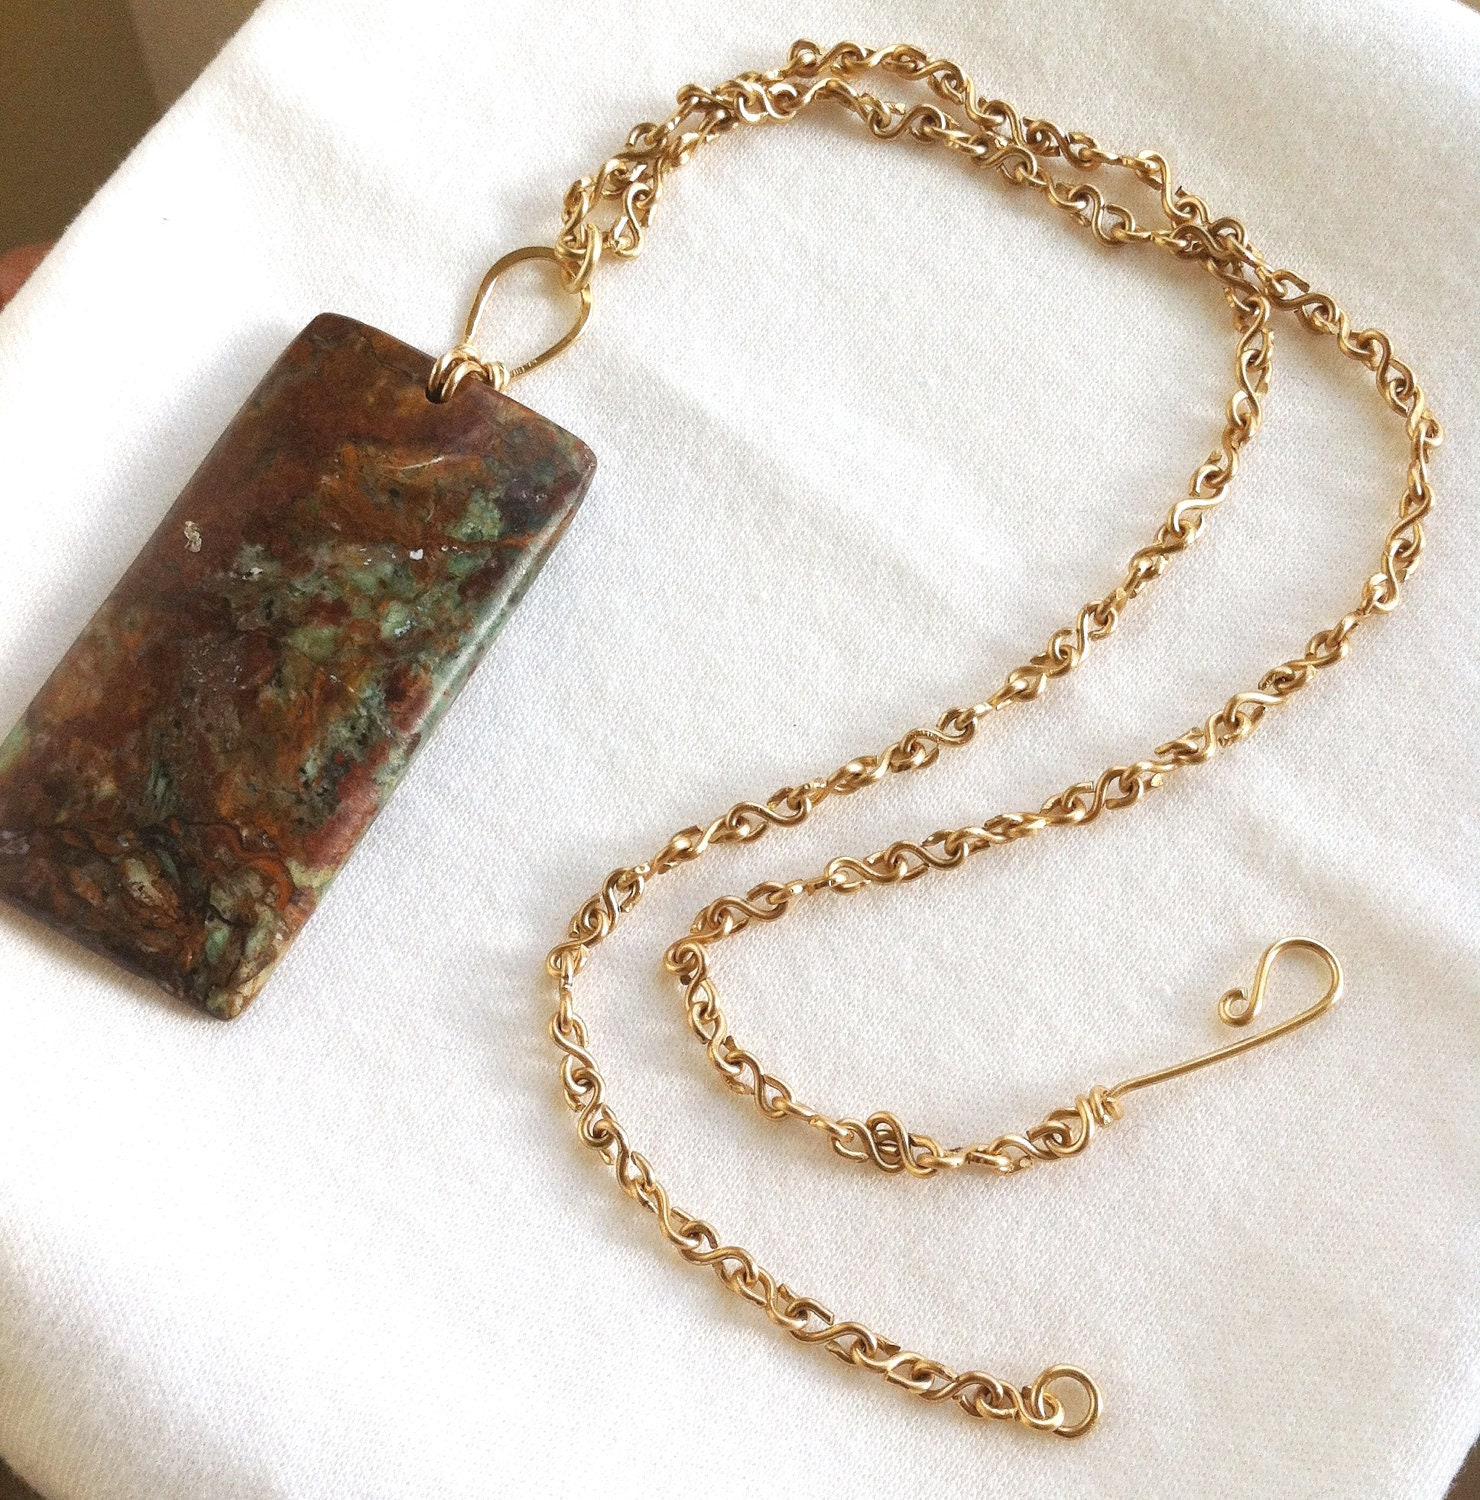 AFRIKAN GOLD - African Green Opal w/Handmade Brass Chain Necklace